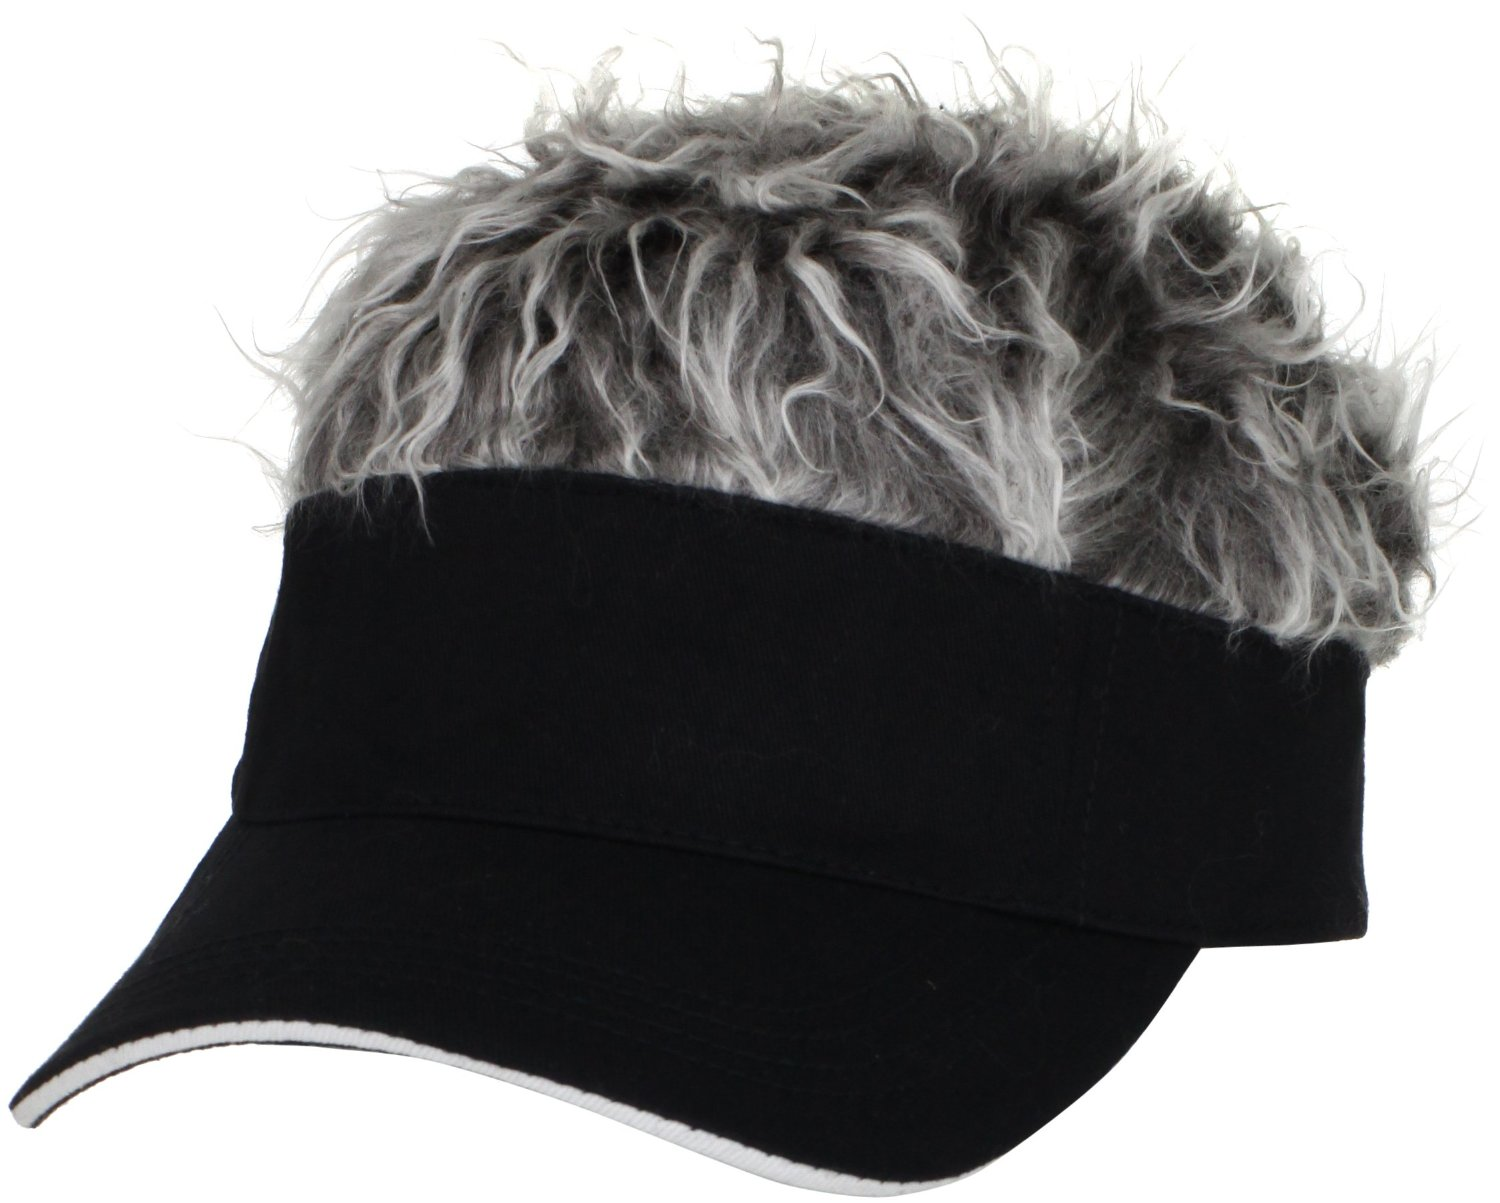 flair hair 039 s boy 039 s velcro visor hat cap w